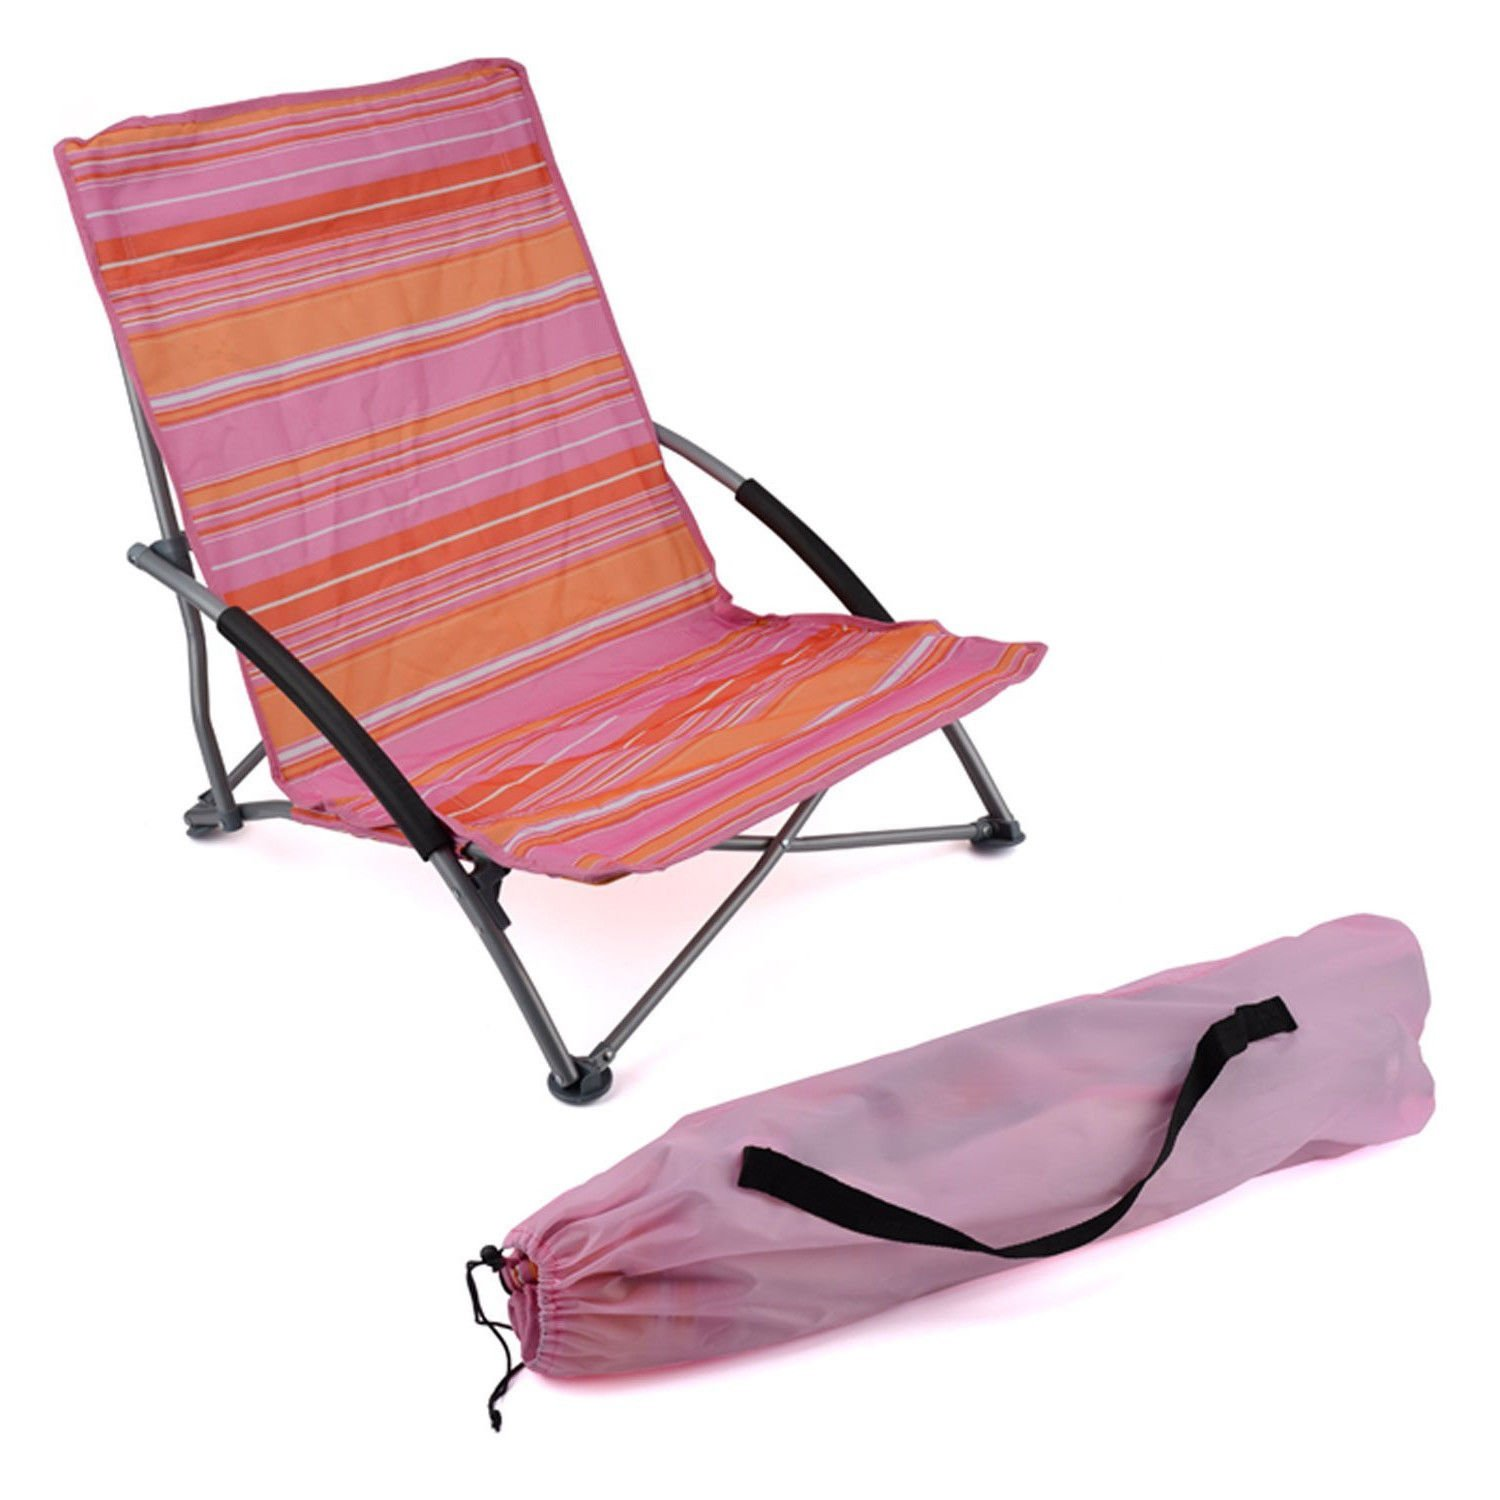 Pleasing Generic Ax Quic Folding Beach Chair Deck Chai Low Slung Andrewgaddart Wooden Chair Designs For Living Room Andrewgaddartcom